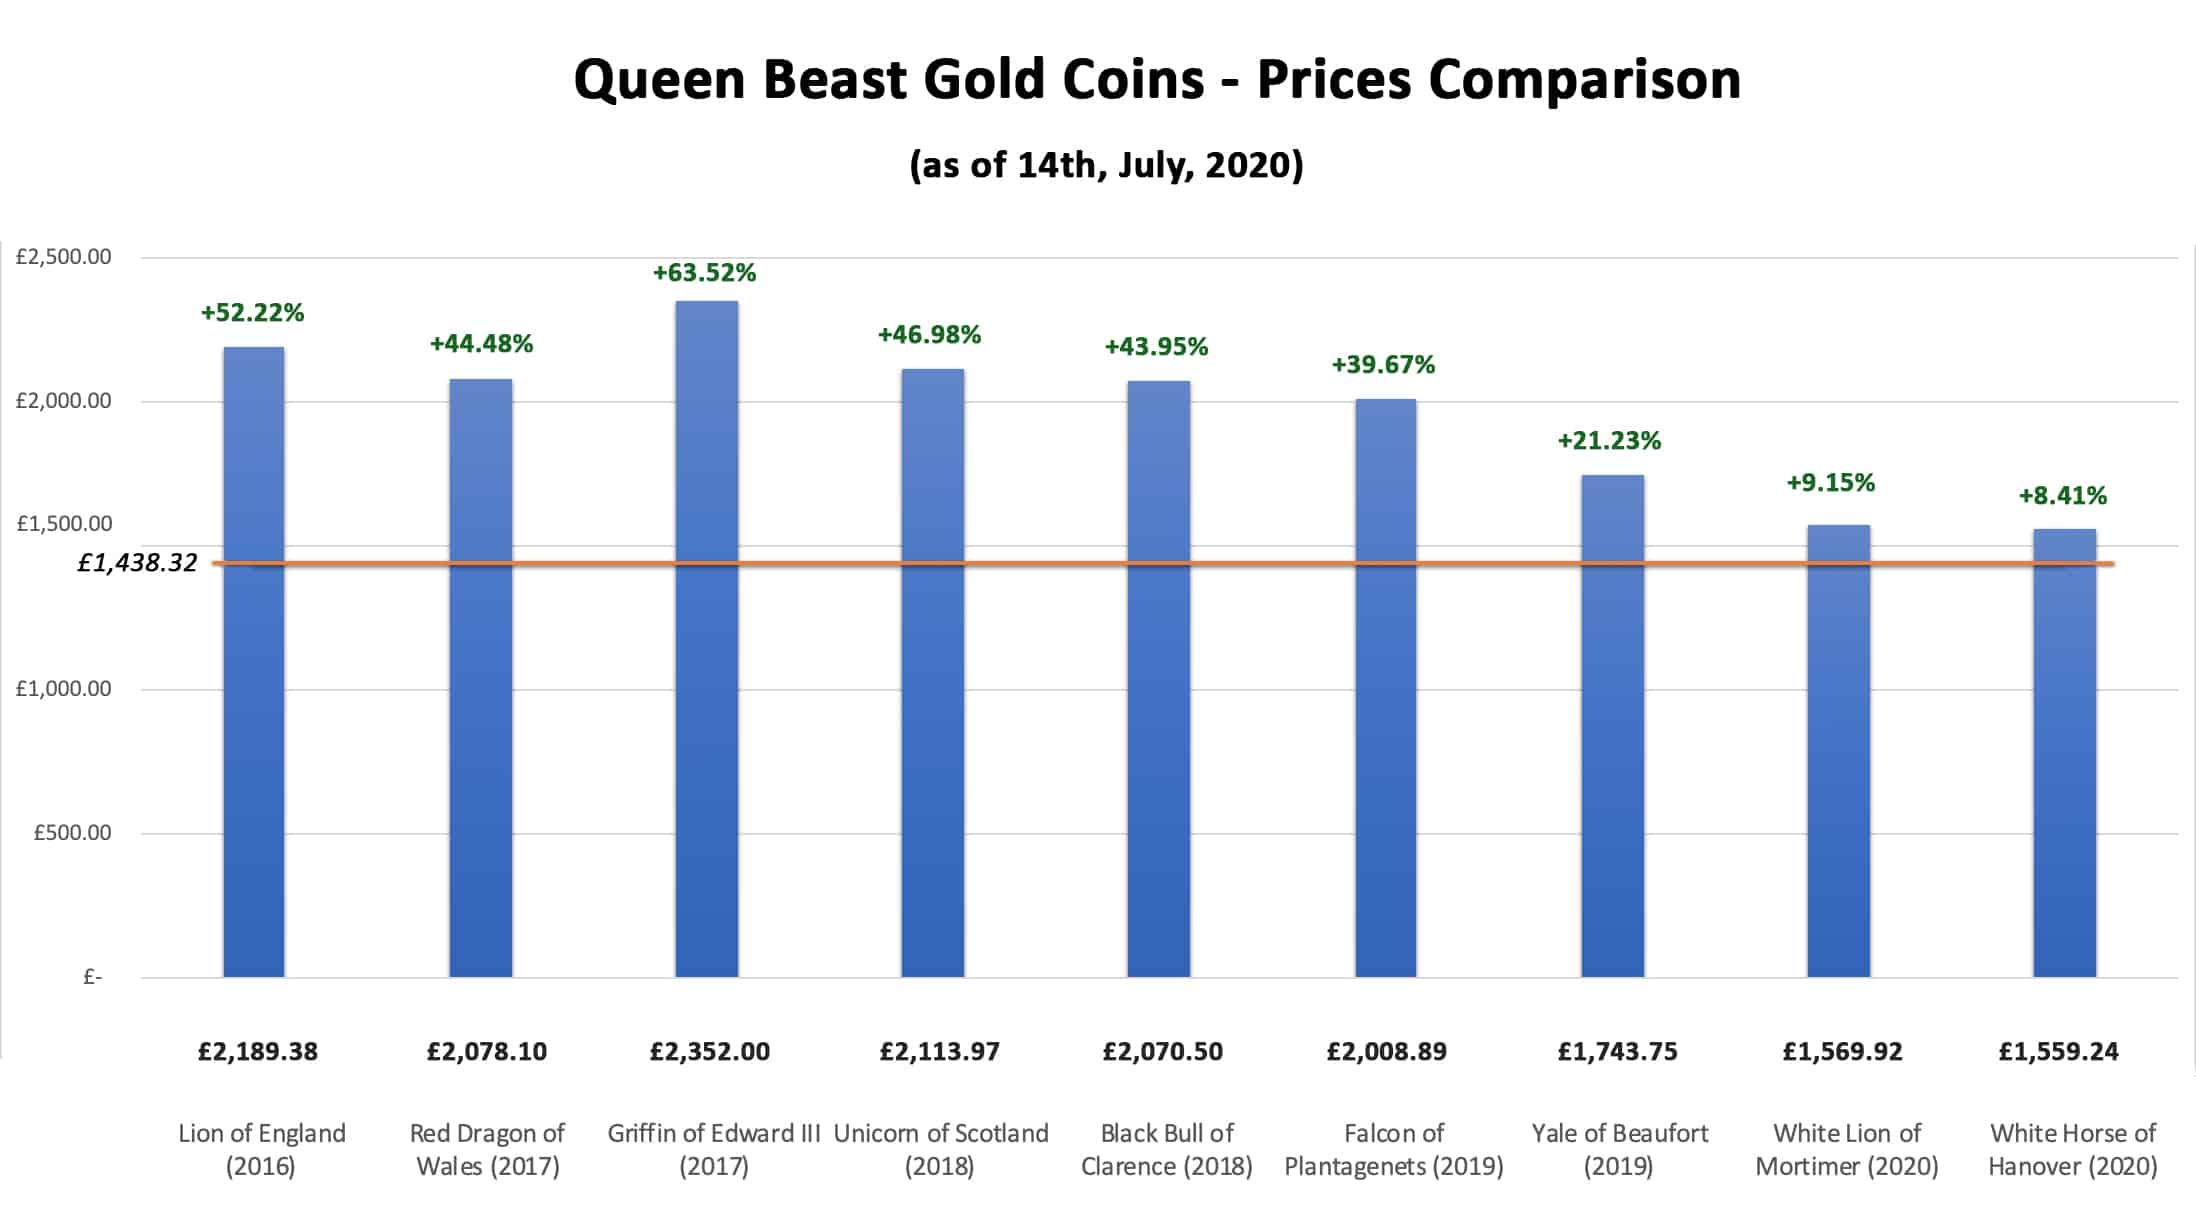 queen-beast-gold-coins-prices-comparison